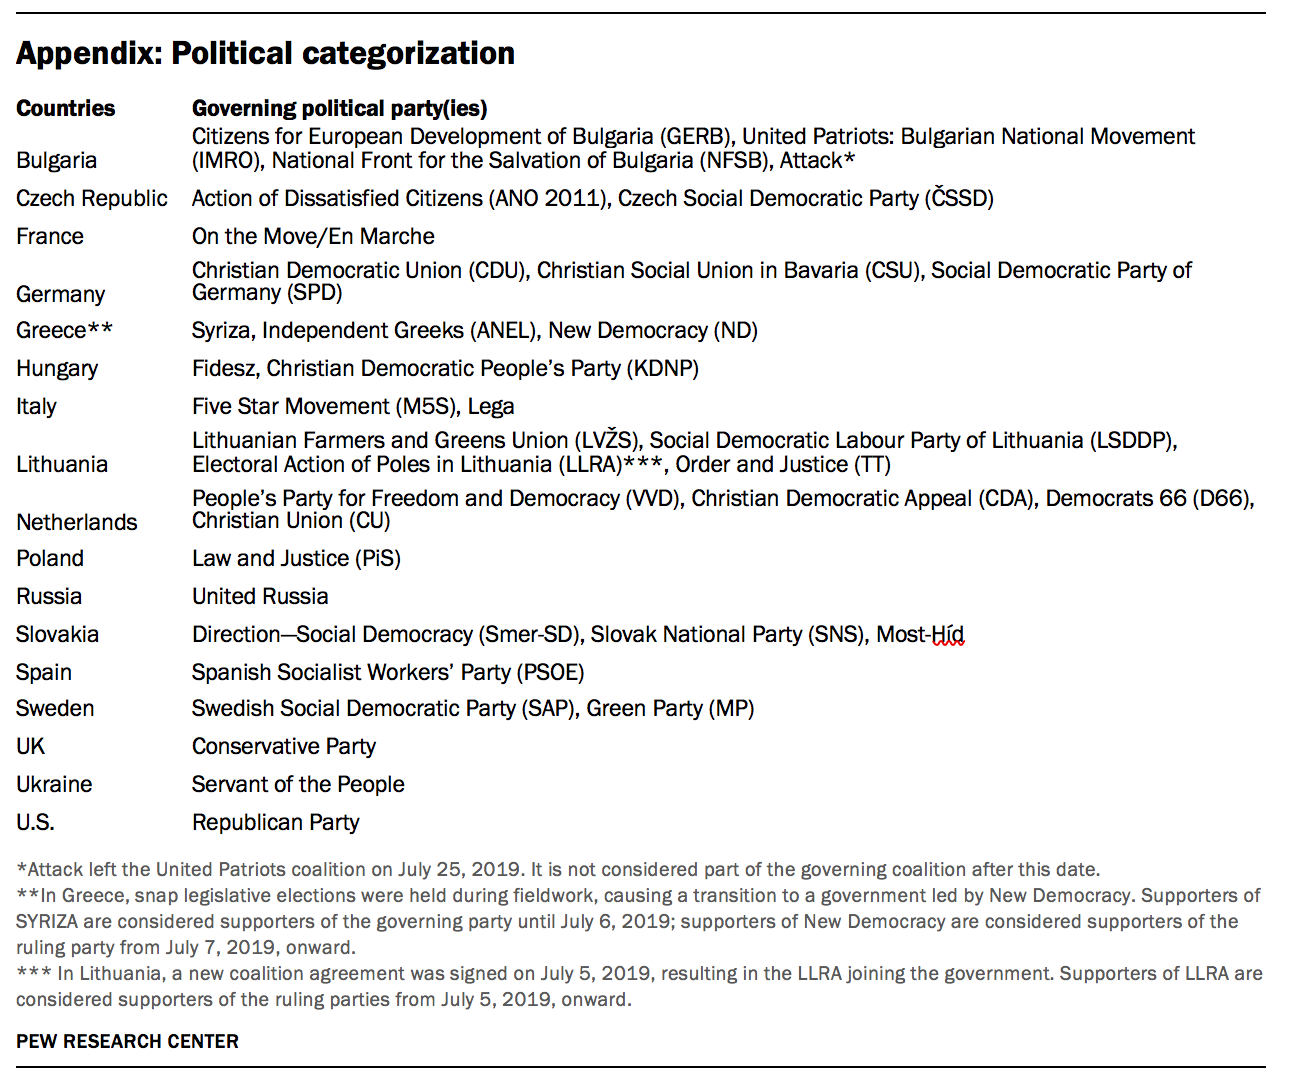 Appendix: Political categorization